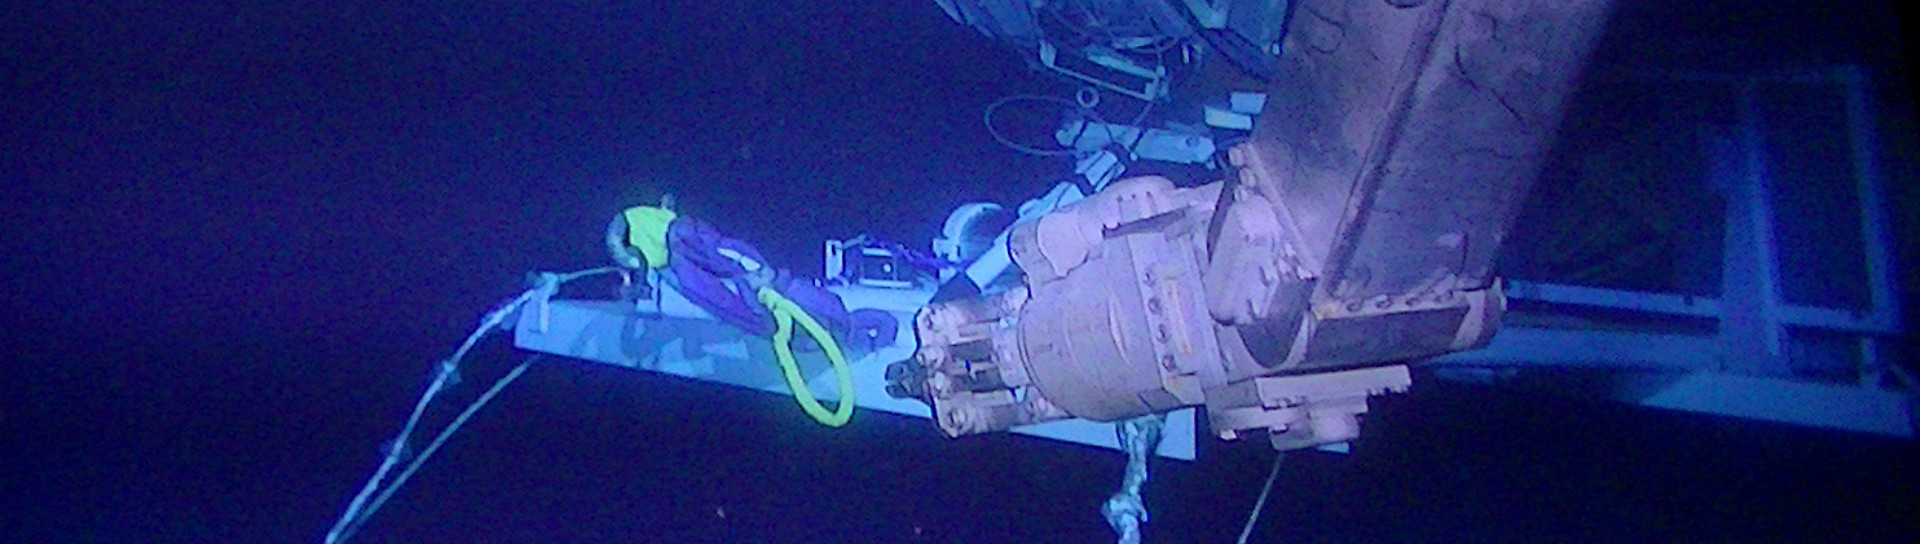 Arm of the ROV at a depth of 3500 m at KM3NeT-It